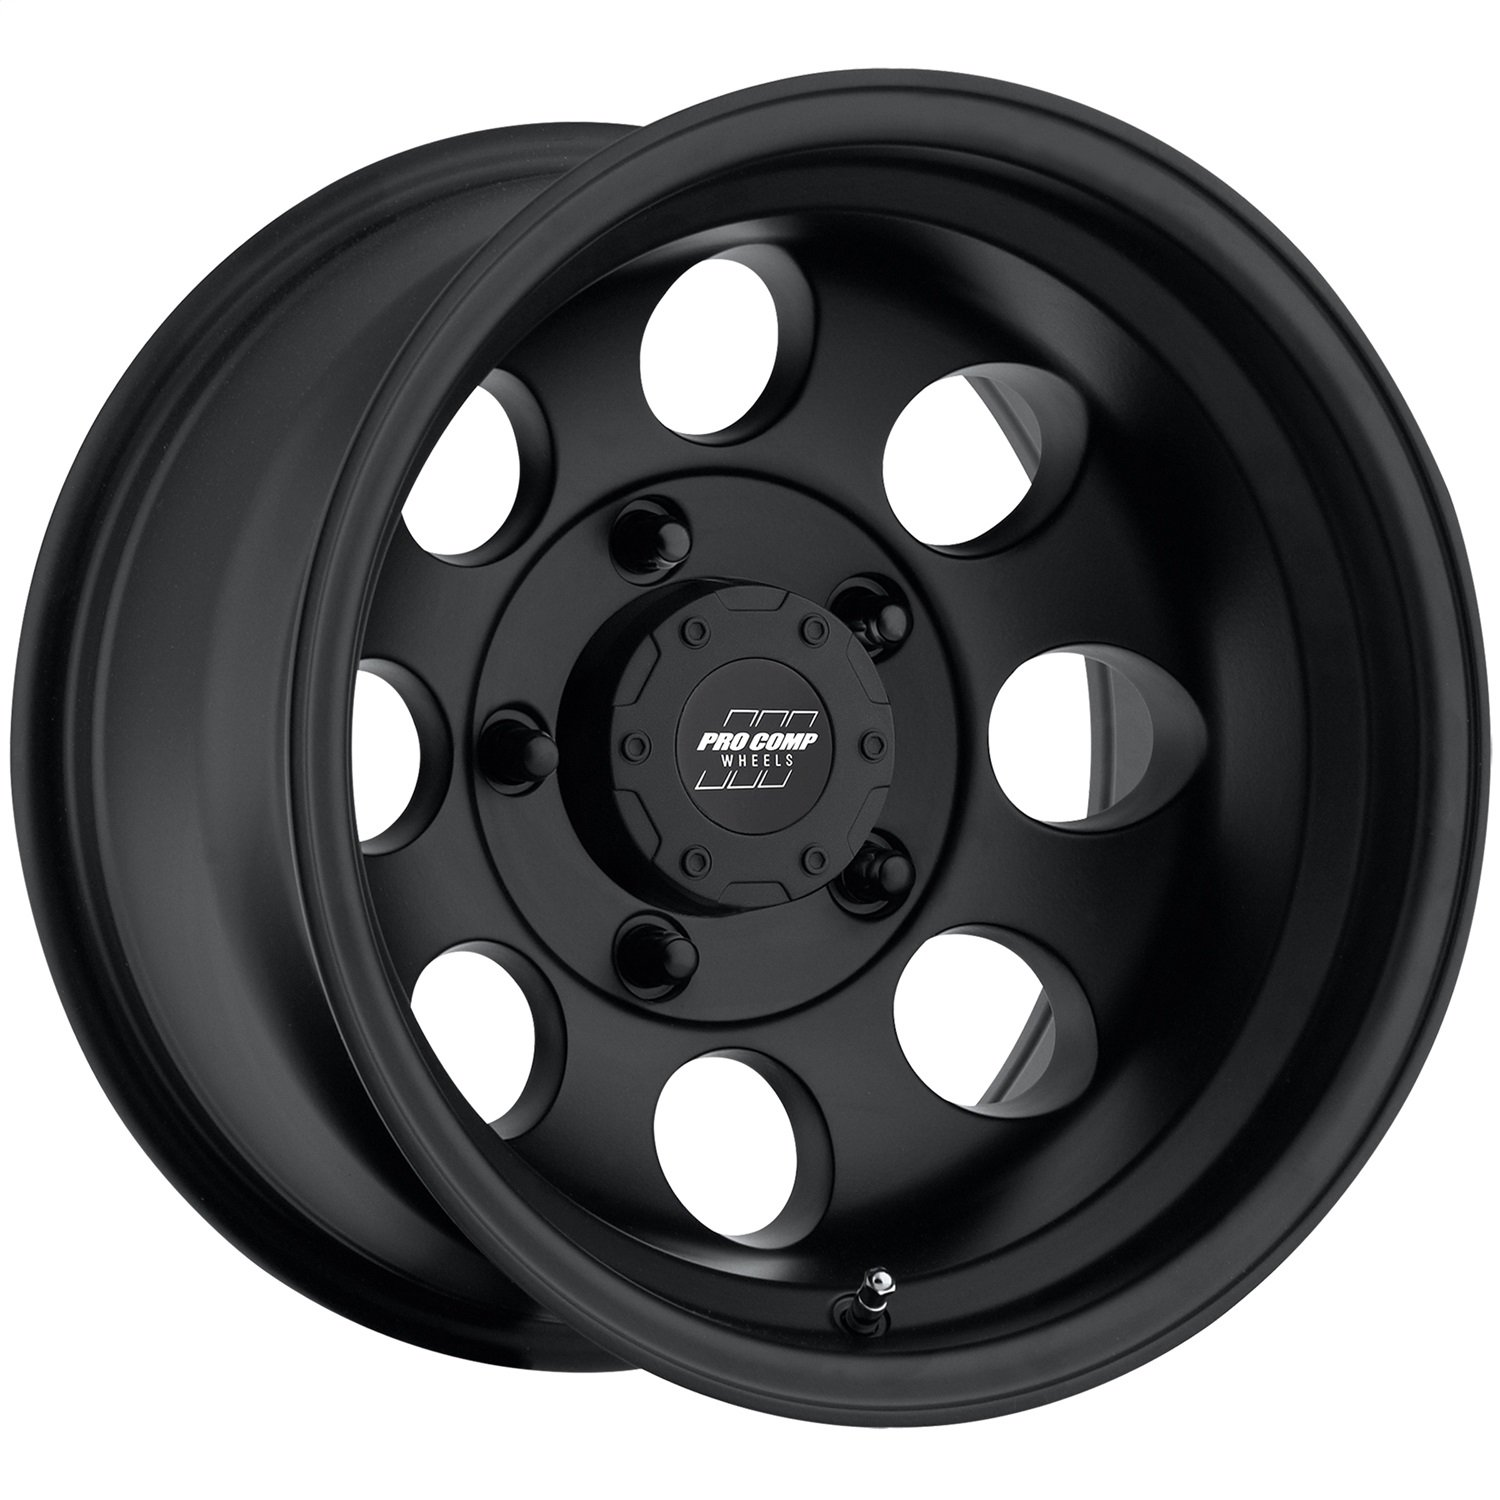 Pro Comp Alloys Series 69 Wheel with Flat Black Finish (15x10''/5x139.7mm)